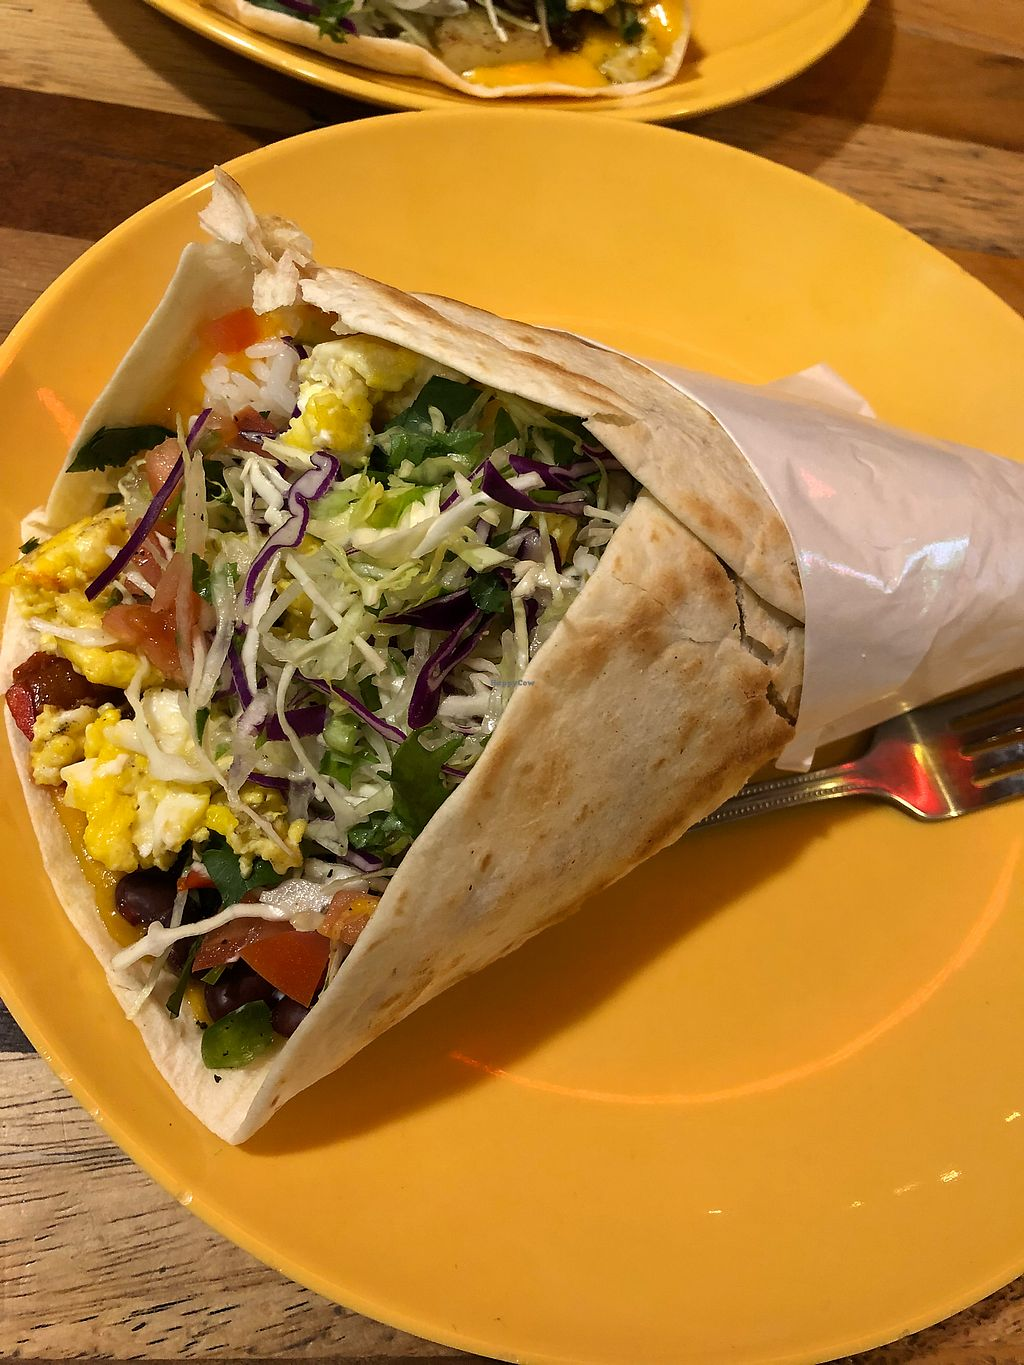 """Photo of Dos Tacos - Gangnam  by <a href=""""/members/profile/JeanWu"""">JeanWu</a> <br/>Yummy!! <br/> February 3, 2018  - <a href='/contact/abuse/image/50380/354521'>Report</a>"""